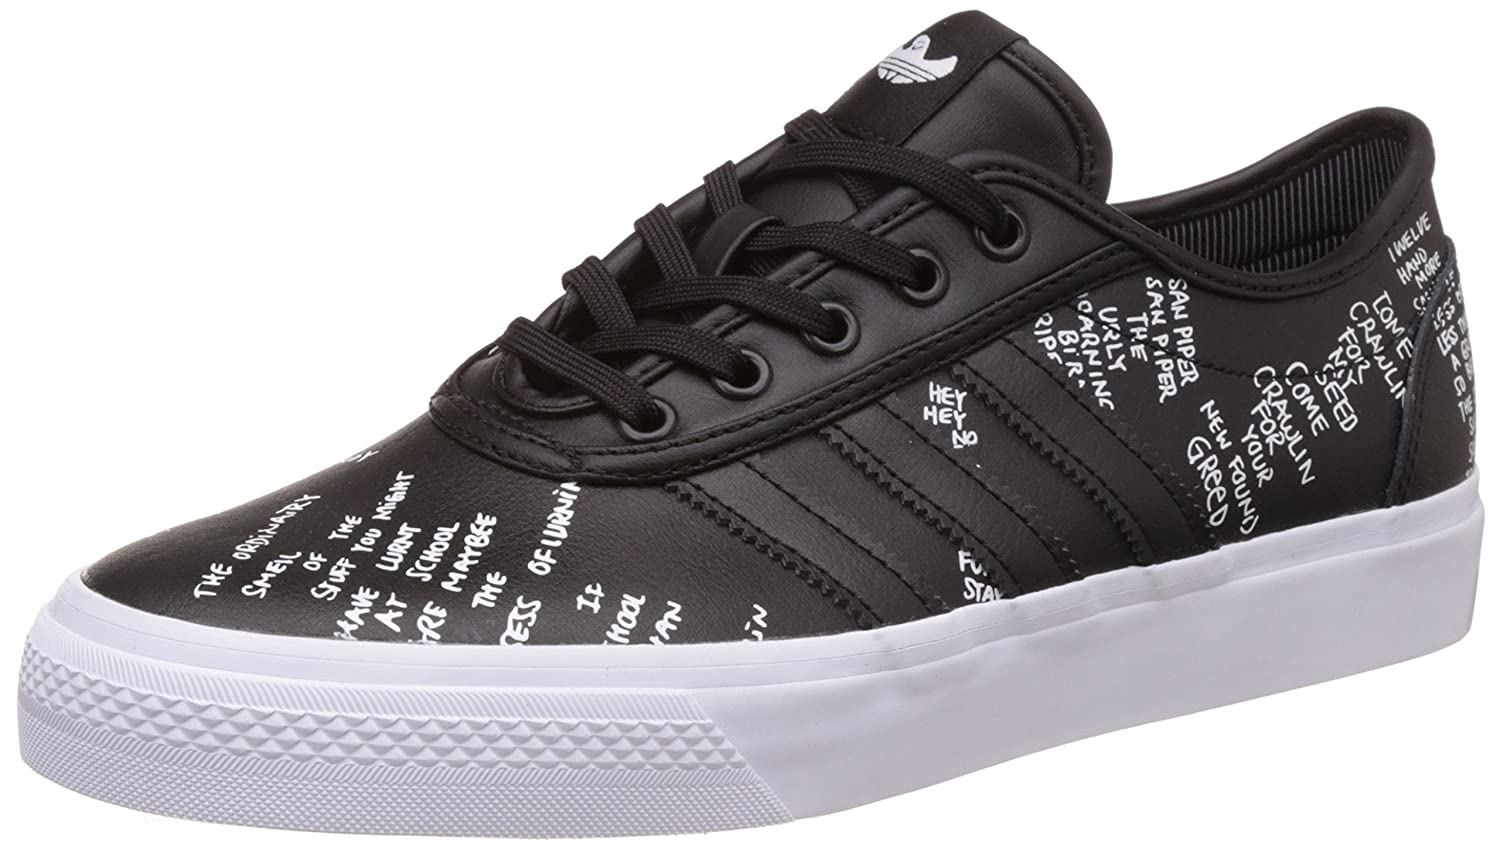 meet 0ac6e 74bf6 adidas Originals Mens Adi-Ease Classified Cblack, Ftwwht and Blubir  Sneakers - 7 UKIndia (40.67 EU) Buy Online at Low Prices in India -  Amazon.in